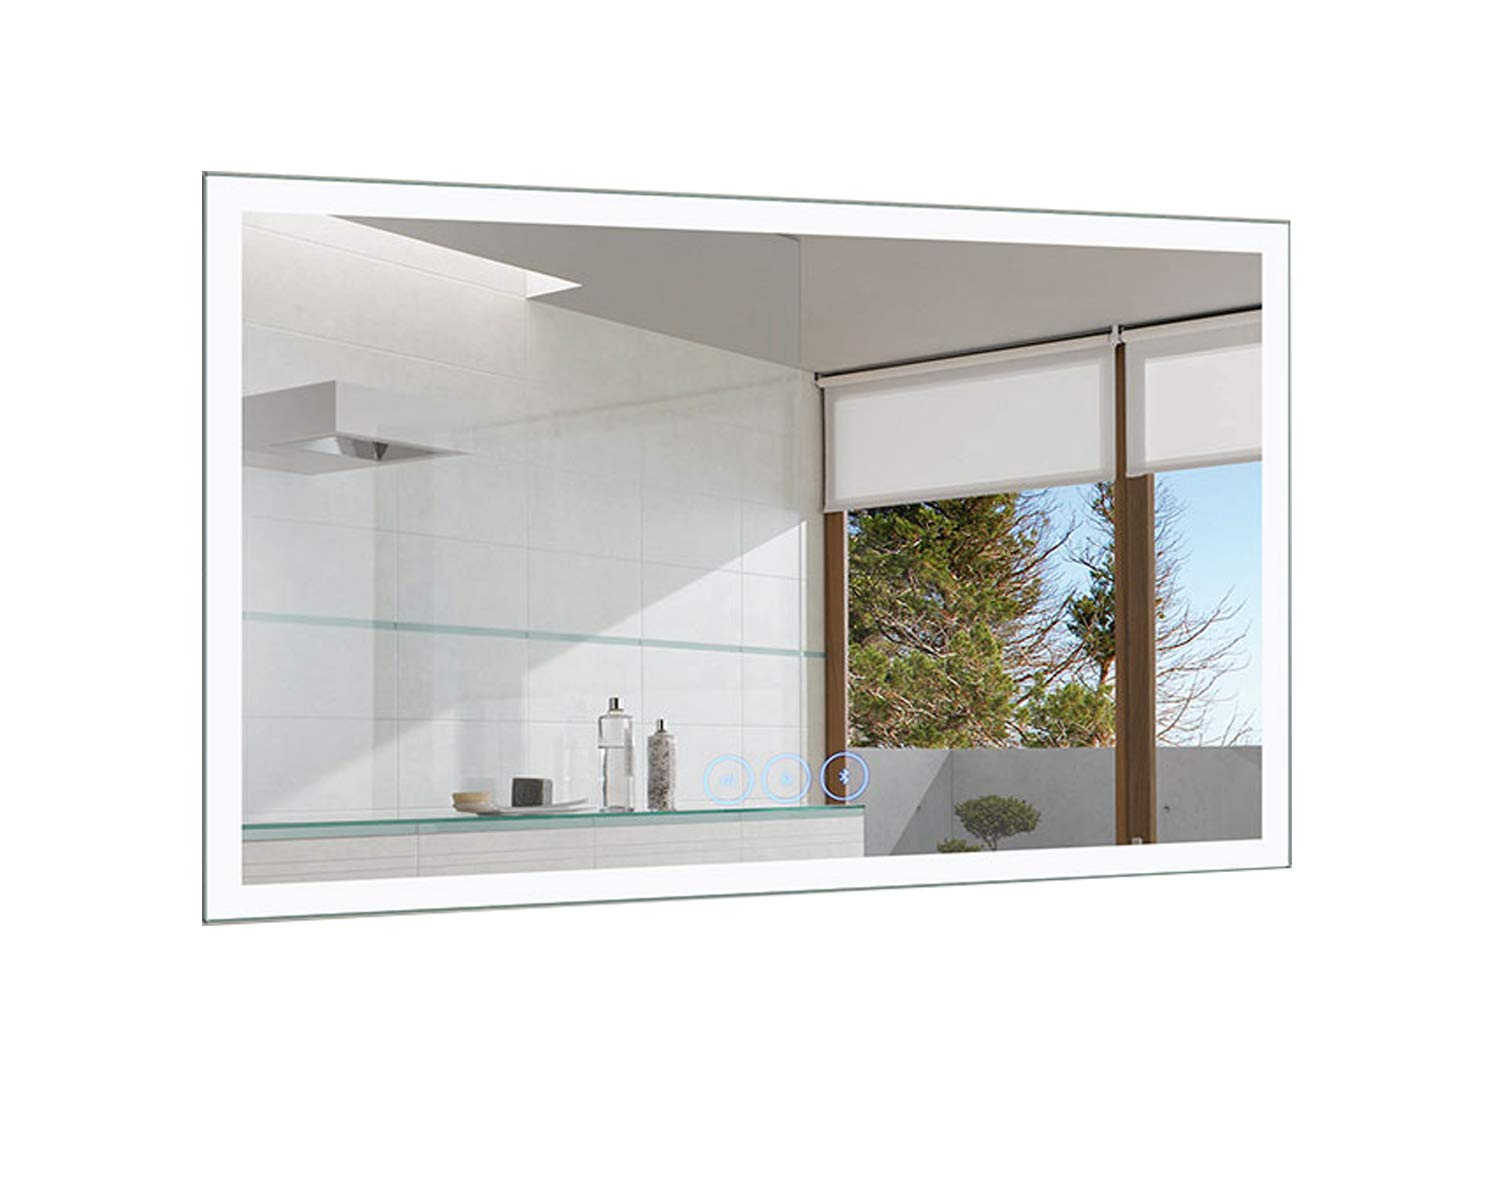 D-HYH 55 x 36 in Horizontal Dimmable LED Bathroom Mirror with Anti-Fog and Bluetooth Function (DK-D-N031-T) by D-HYH